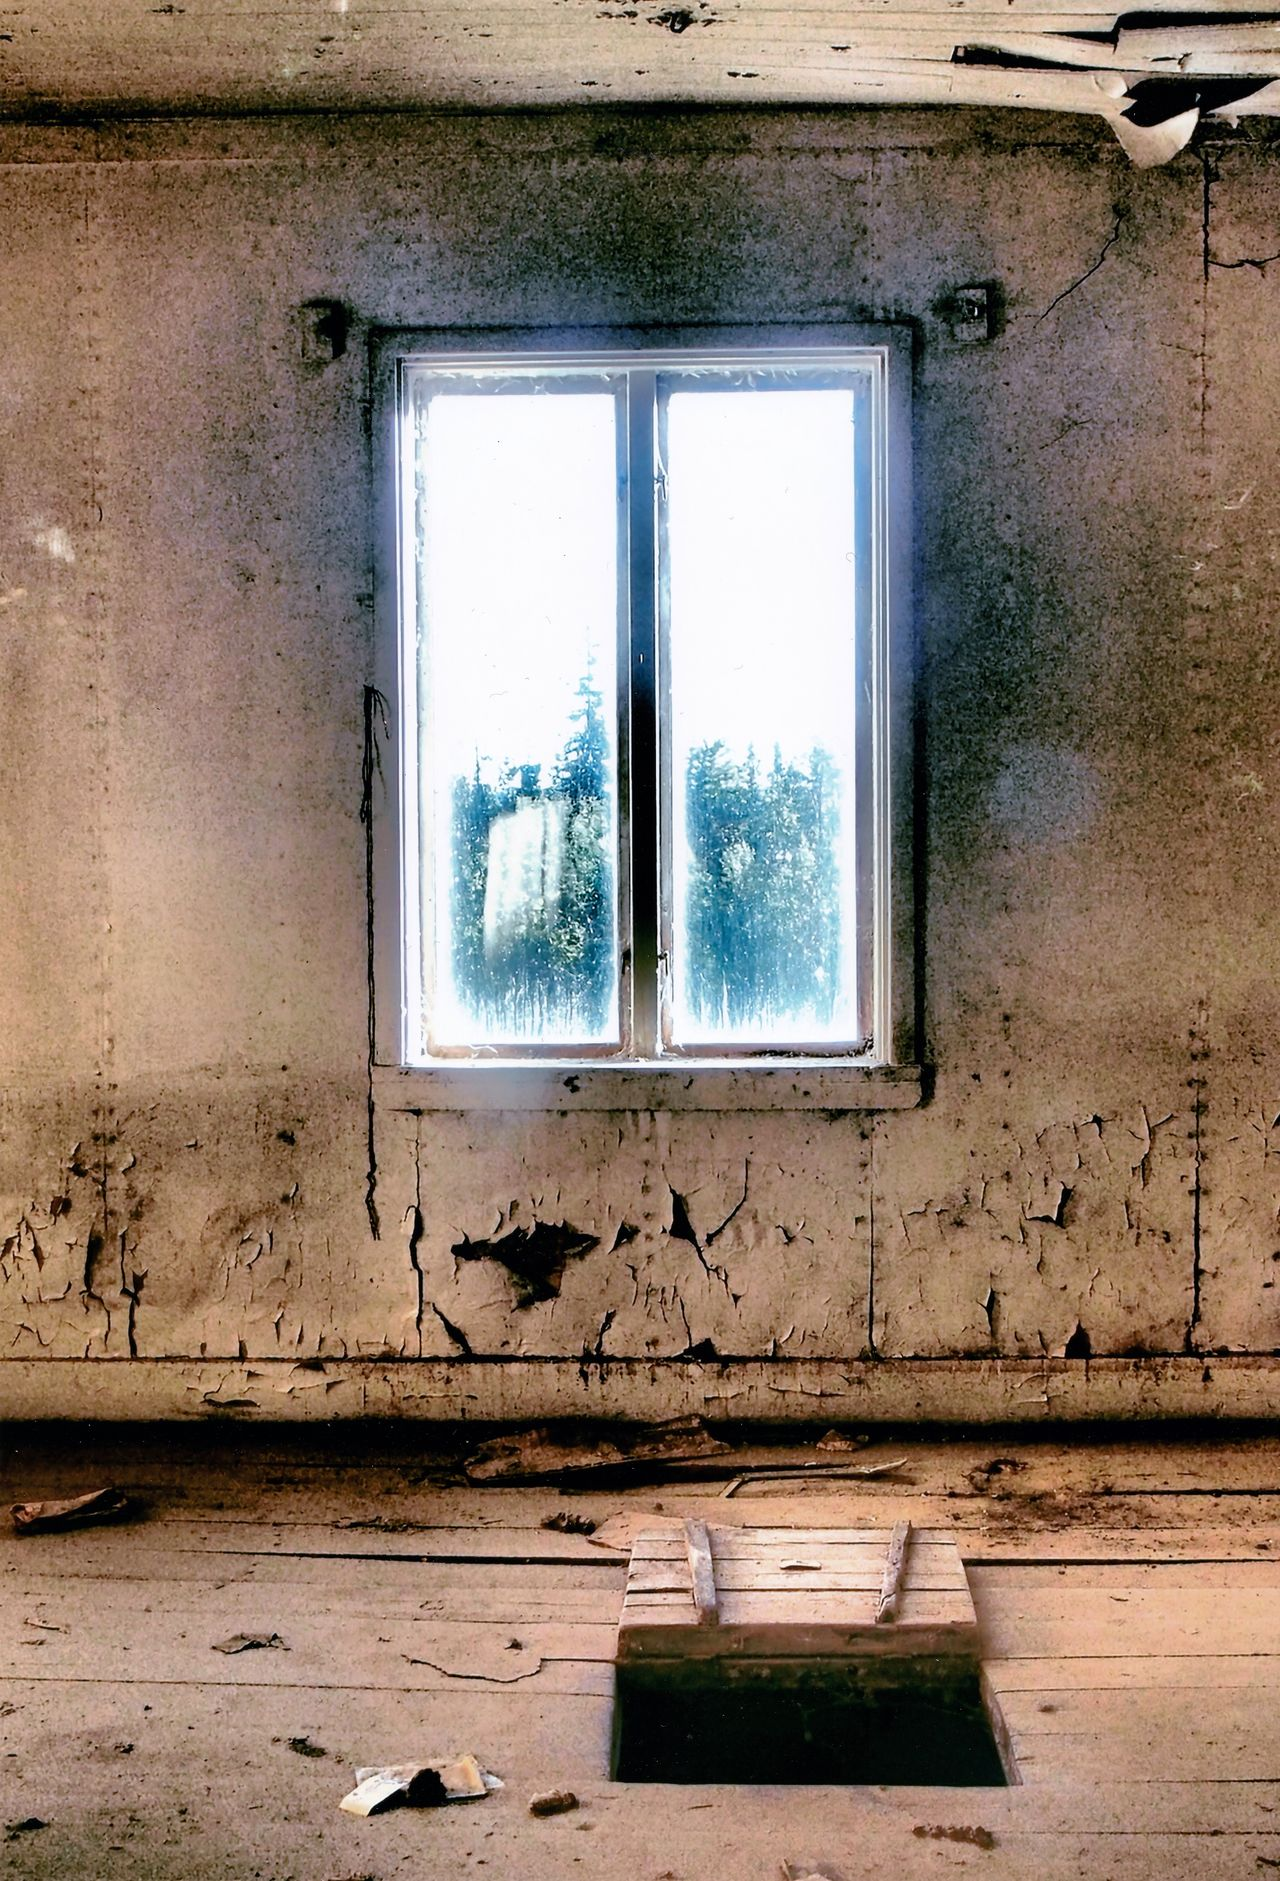 Trapdoor in decaying house Day Decaying Building Indoors  Lost Places No People Rotten Stuga Trapdoor Window